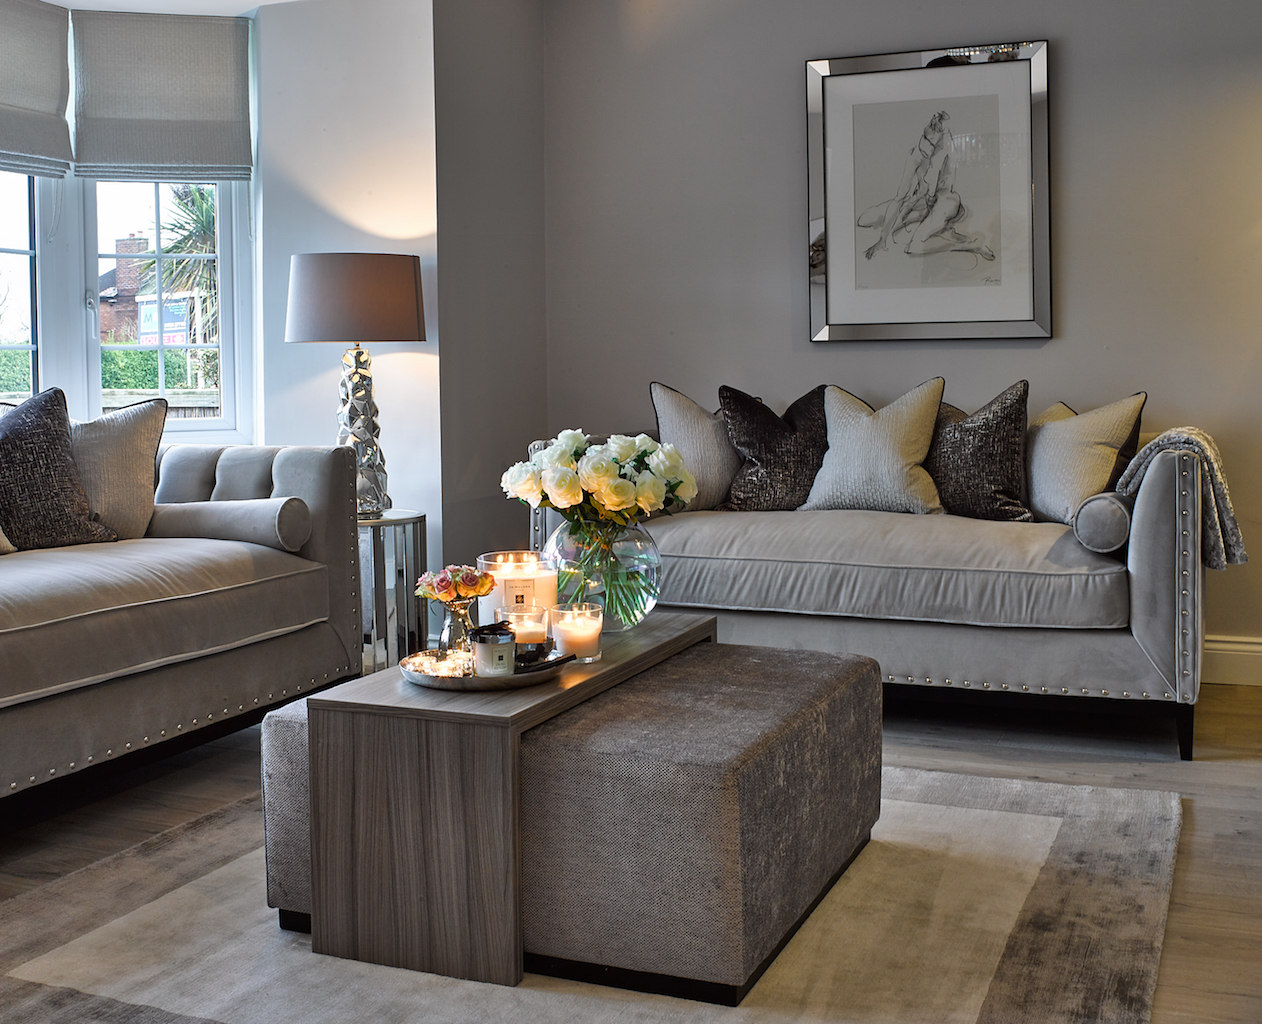 Stretton, Living Room, Made to Order Furniture, GP & J Baker, Nobilis, Bella Peroni, Interior Design, Cheshire.